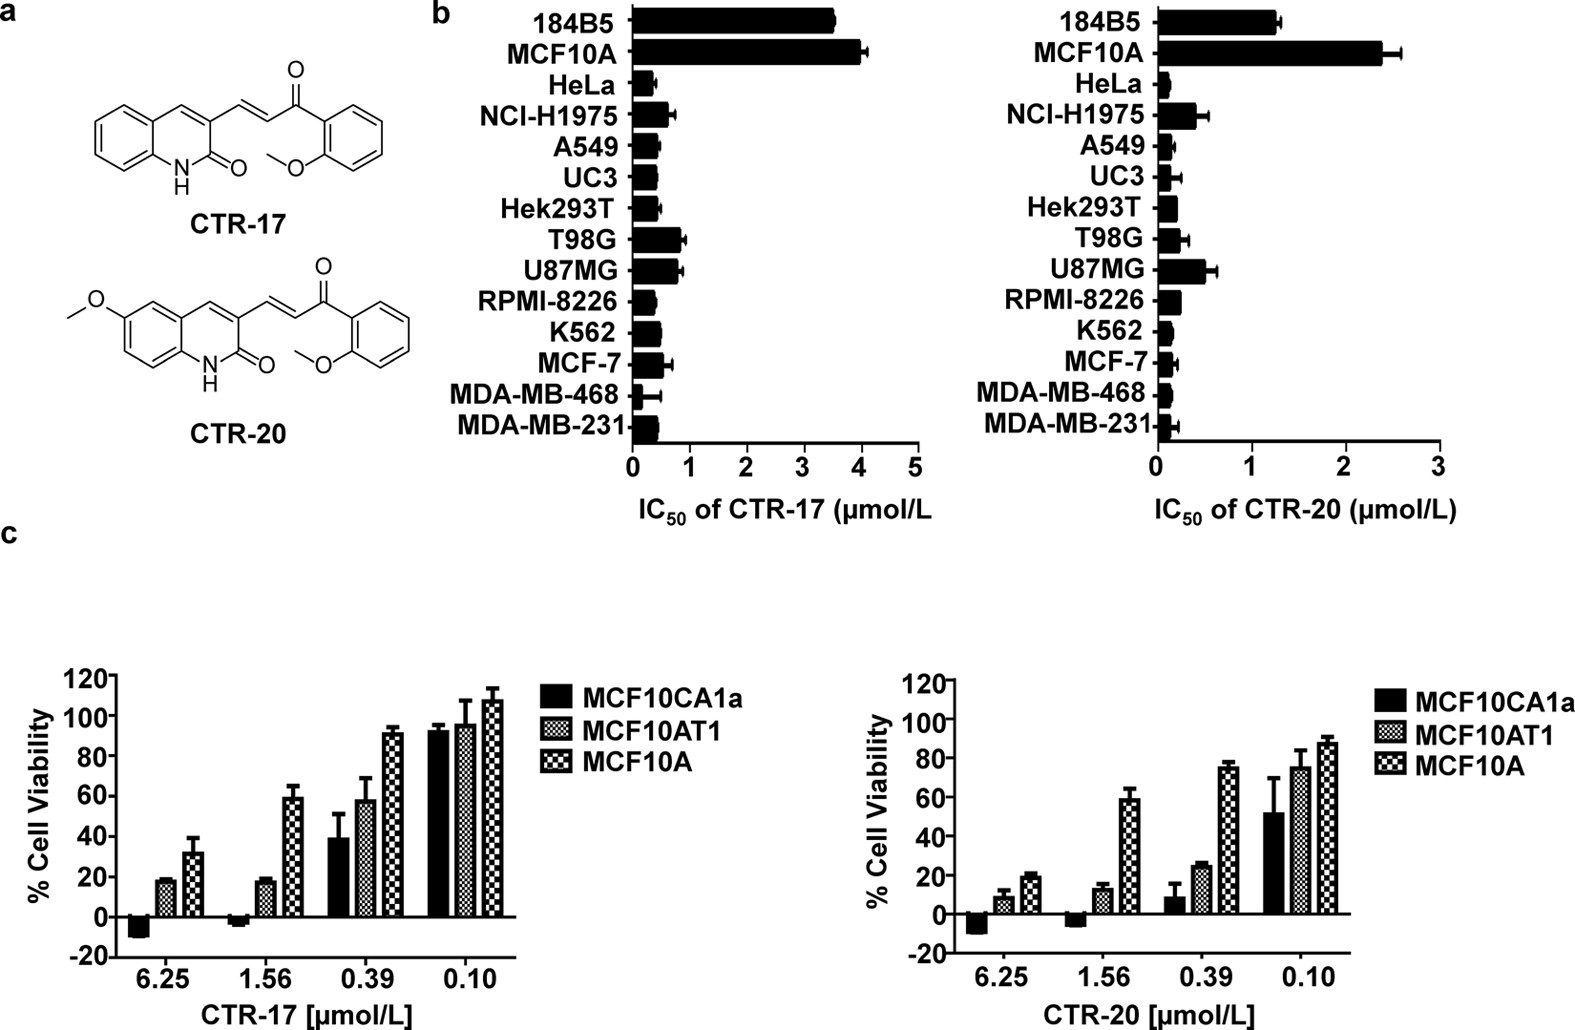 Novel Quinolone Chalcones Targeting Colchicine Binding Pocket Kill Multidrug Resistant Cancer Cells By Inhibiting Tubulin Activity And MRP1 Function